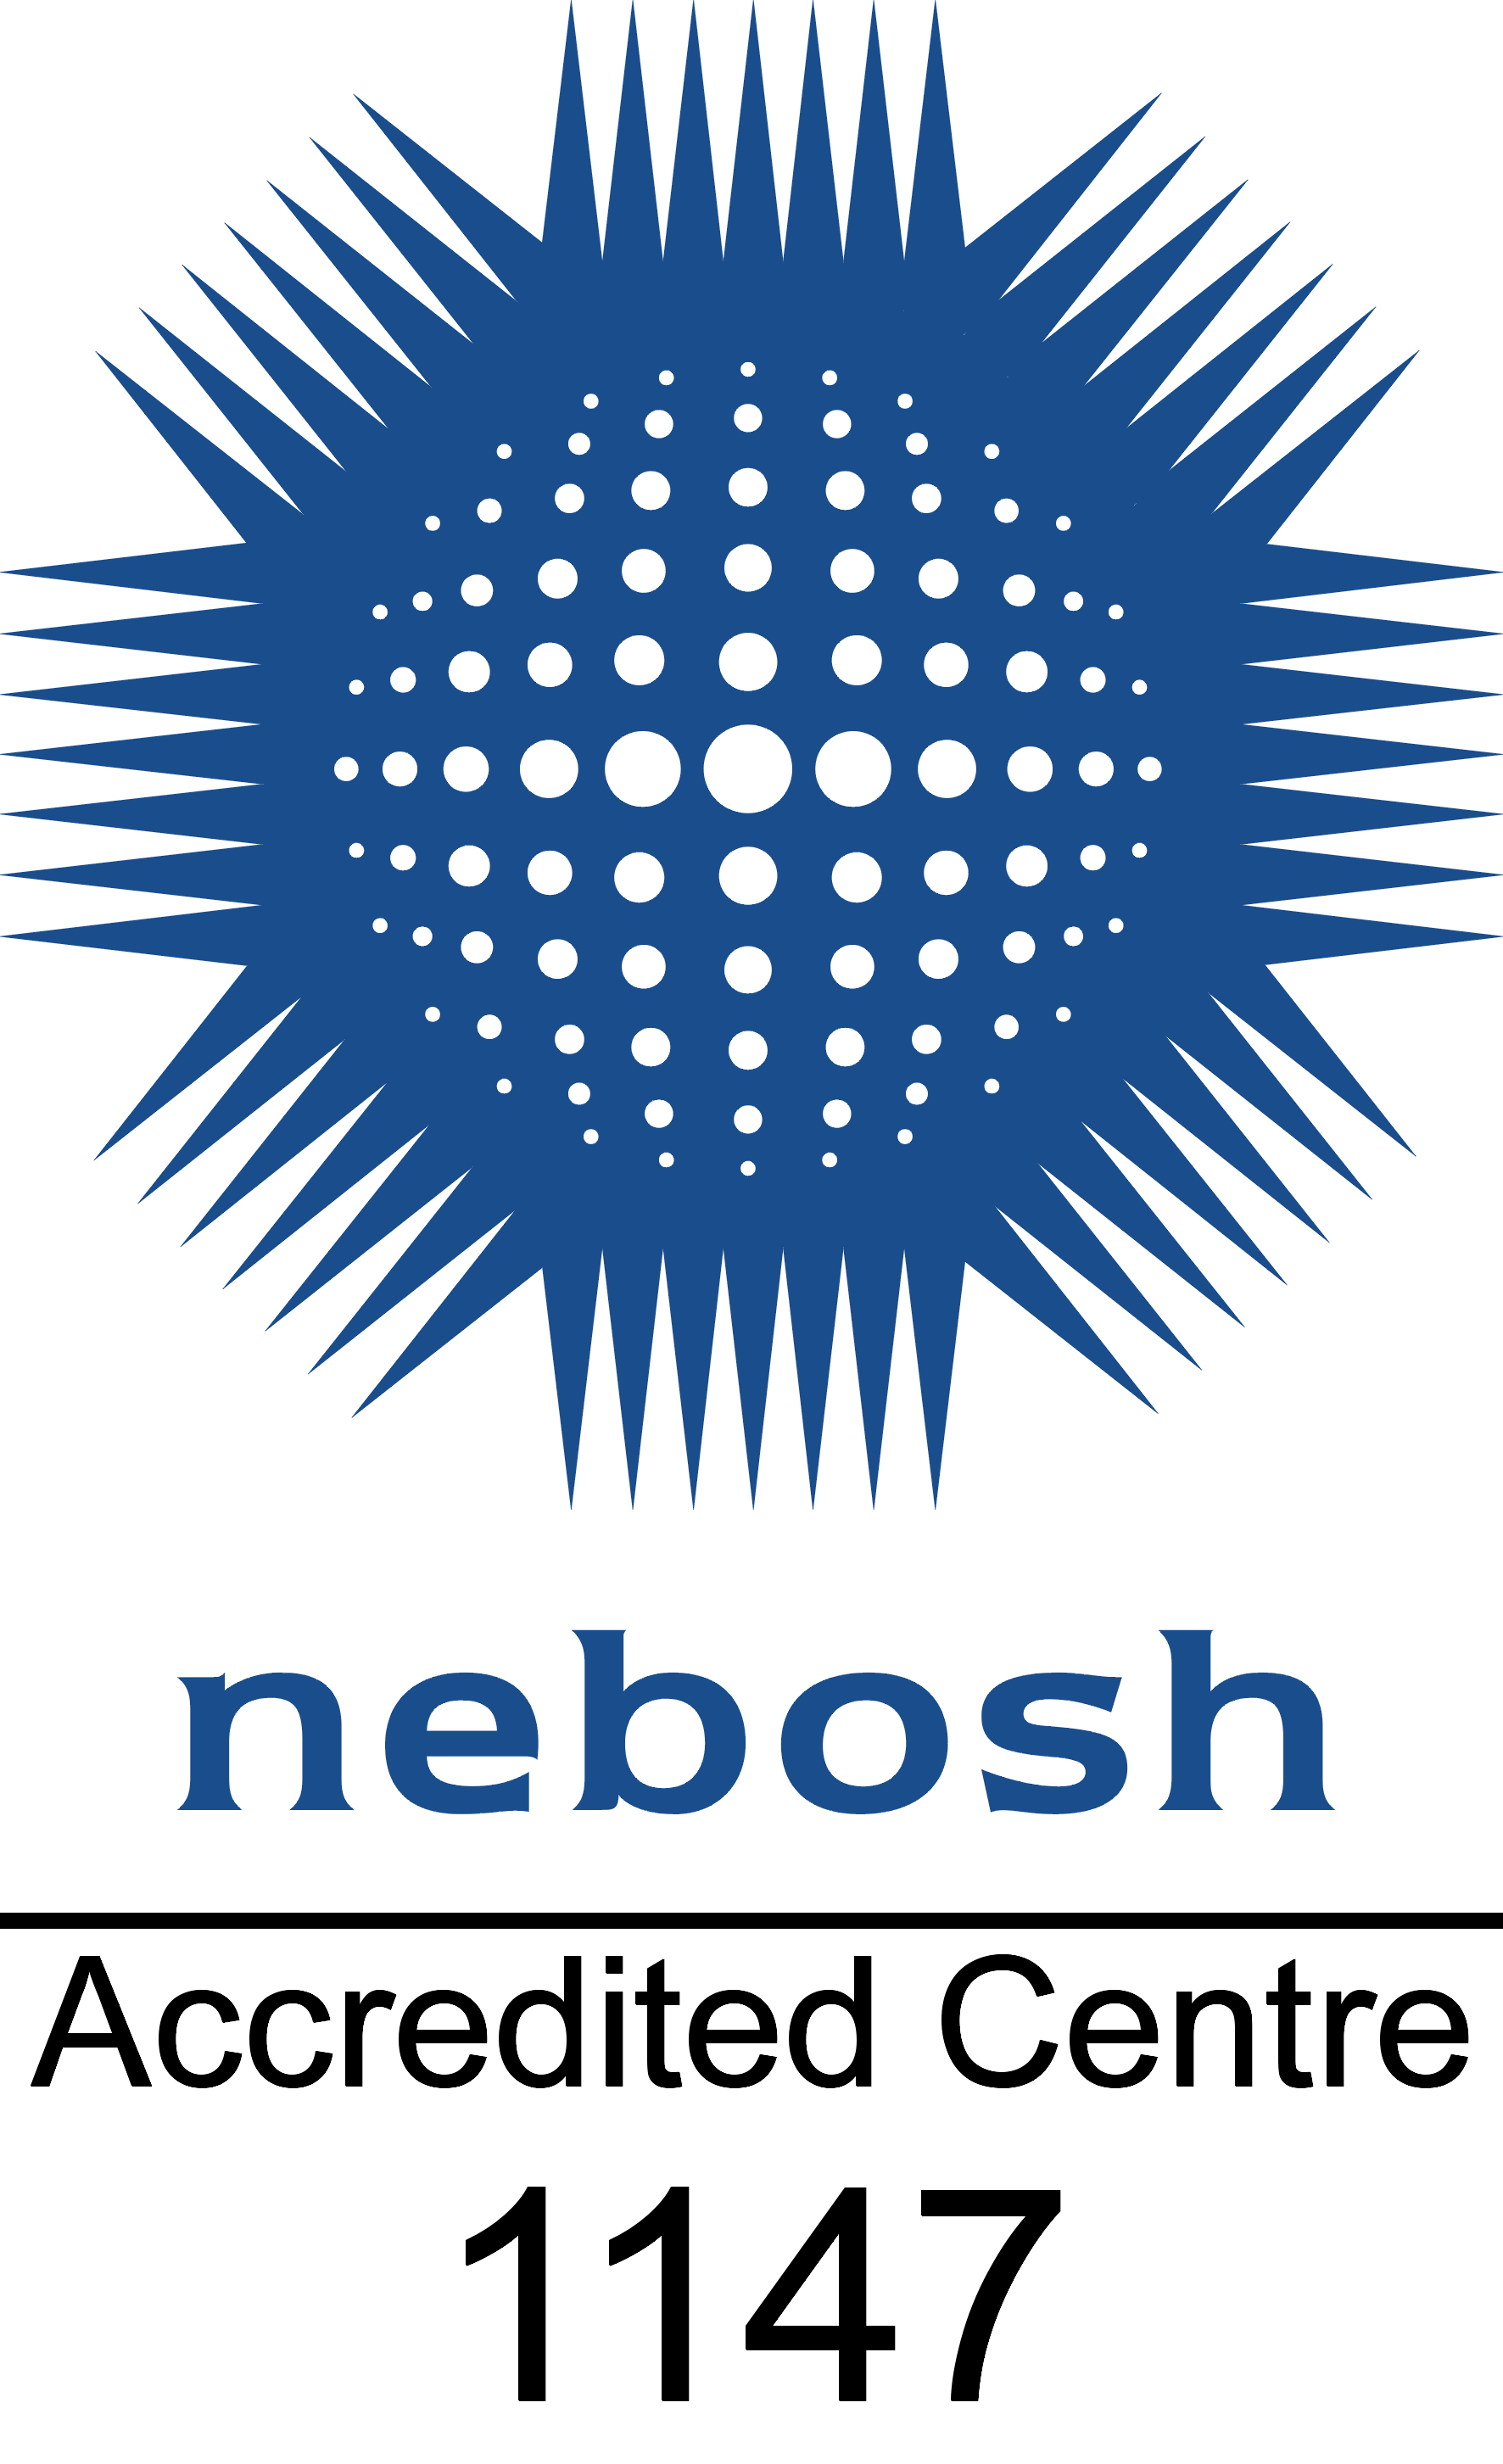 The National General Certificate Is Most Widely Held Health And Safety Qualification In UK Awarded By NEBOSH Examination Board